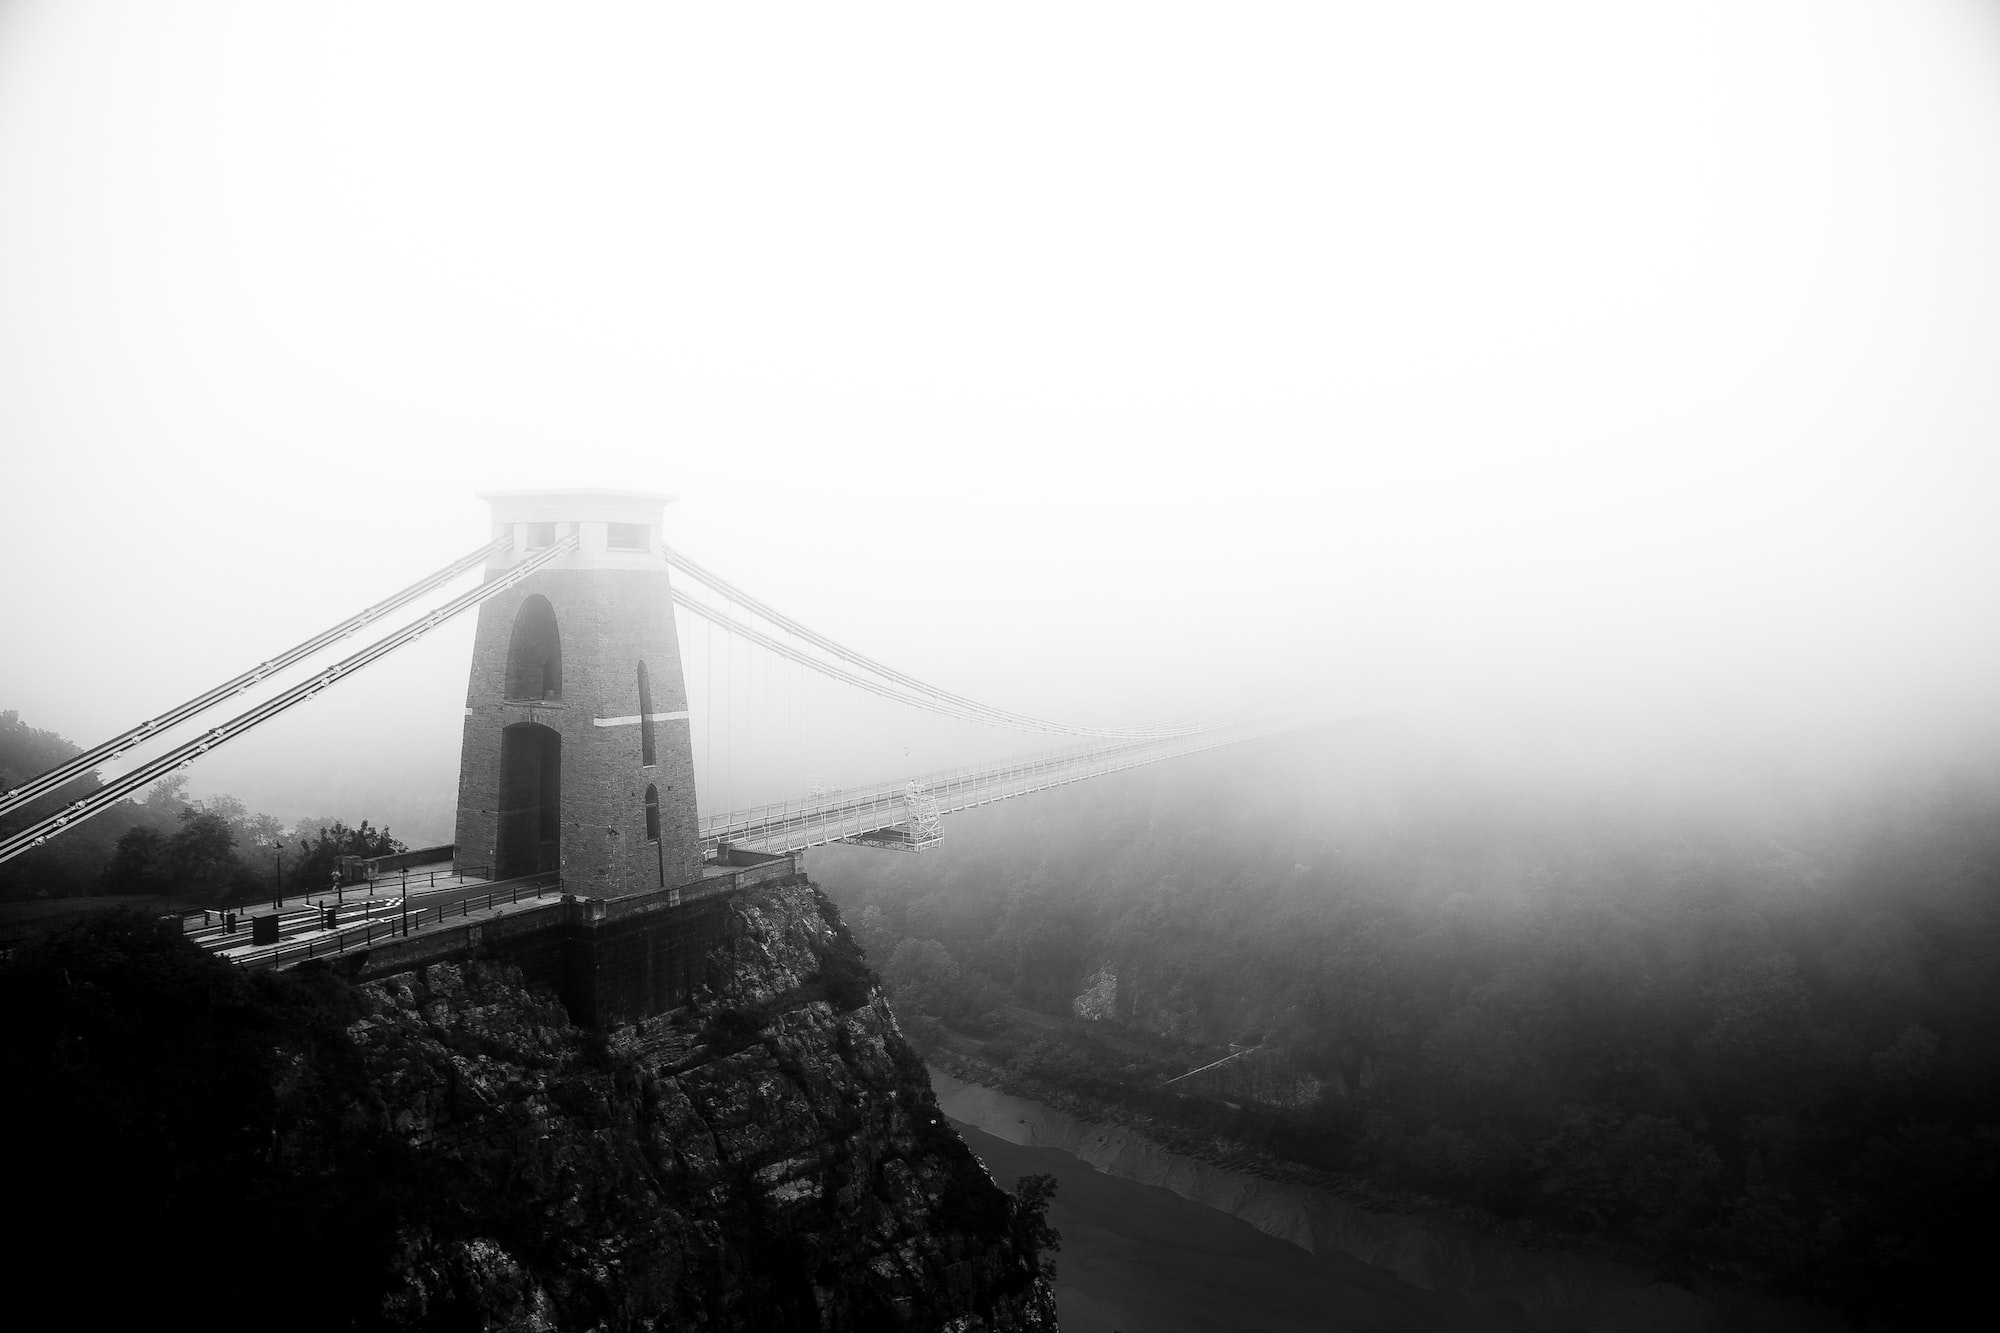 I had waited patiently for months to get this shot. Checking the weather forecast on a daily basis as we approached autumn for a foggy morning. Finally on this early chilly morning (07h00) the fog was thick enough to submerge the opposite side of the bridge creating a mystique - where does the bridge go?  The bridge is an awe inspiring landmark of Bristol. It was the brainchild of Isambard Kingdom Brunel back in around 1830, but the build was halted by the Bristol Riots. The bridge was finally completed in 1864, after Brunel's death.